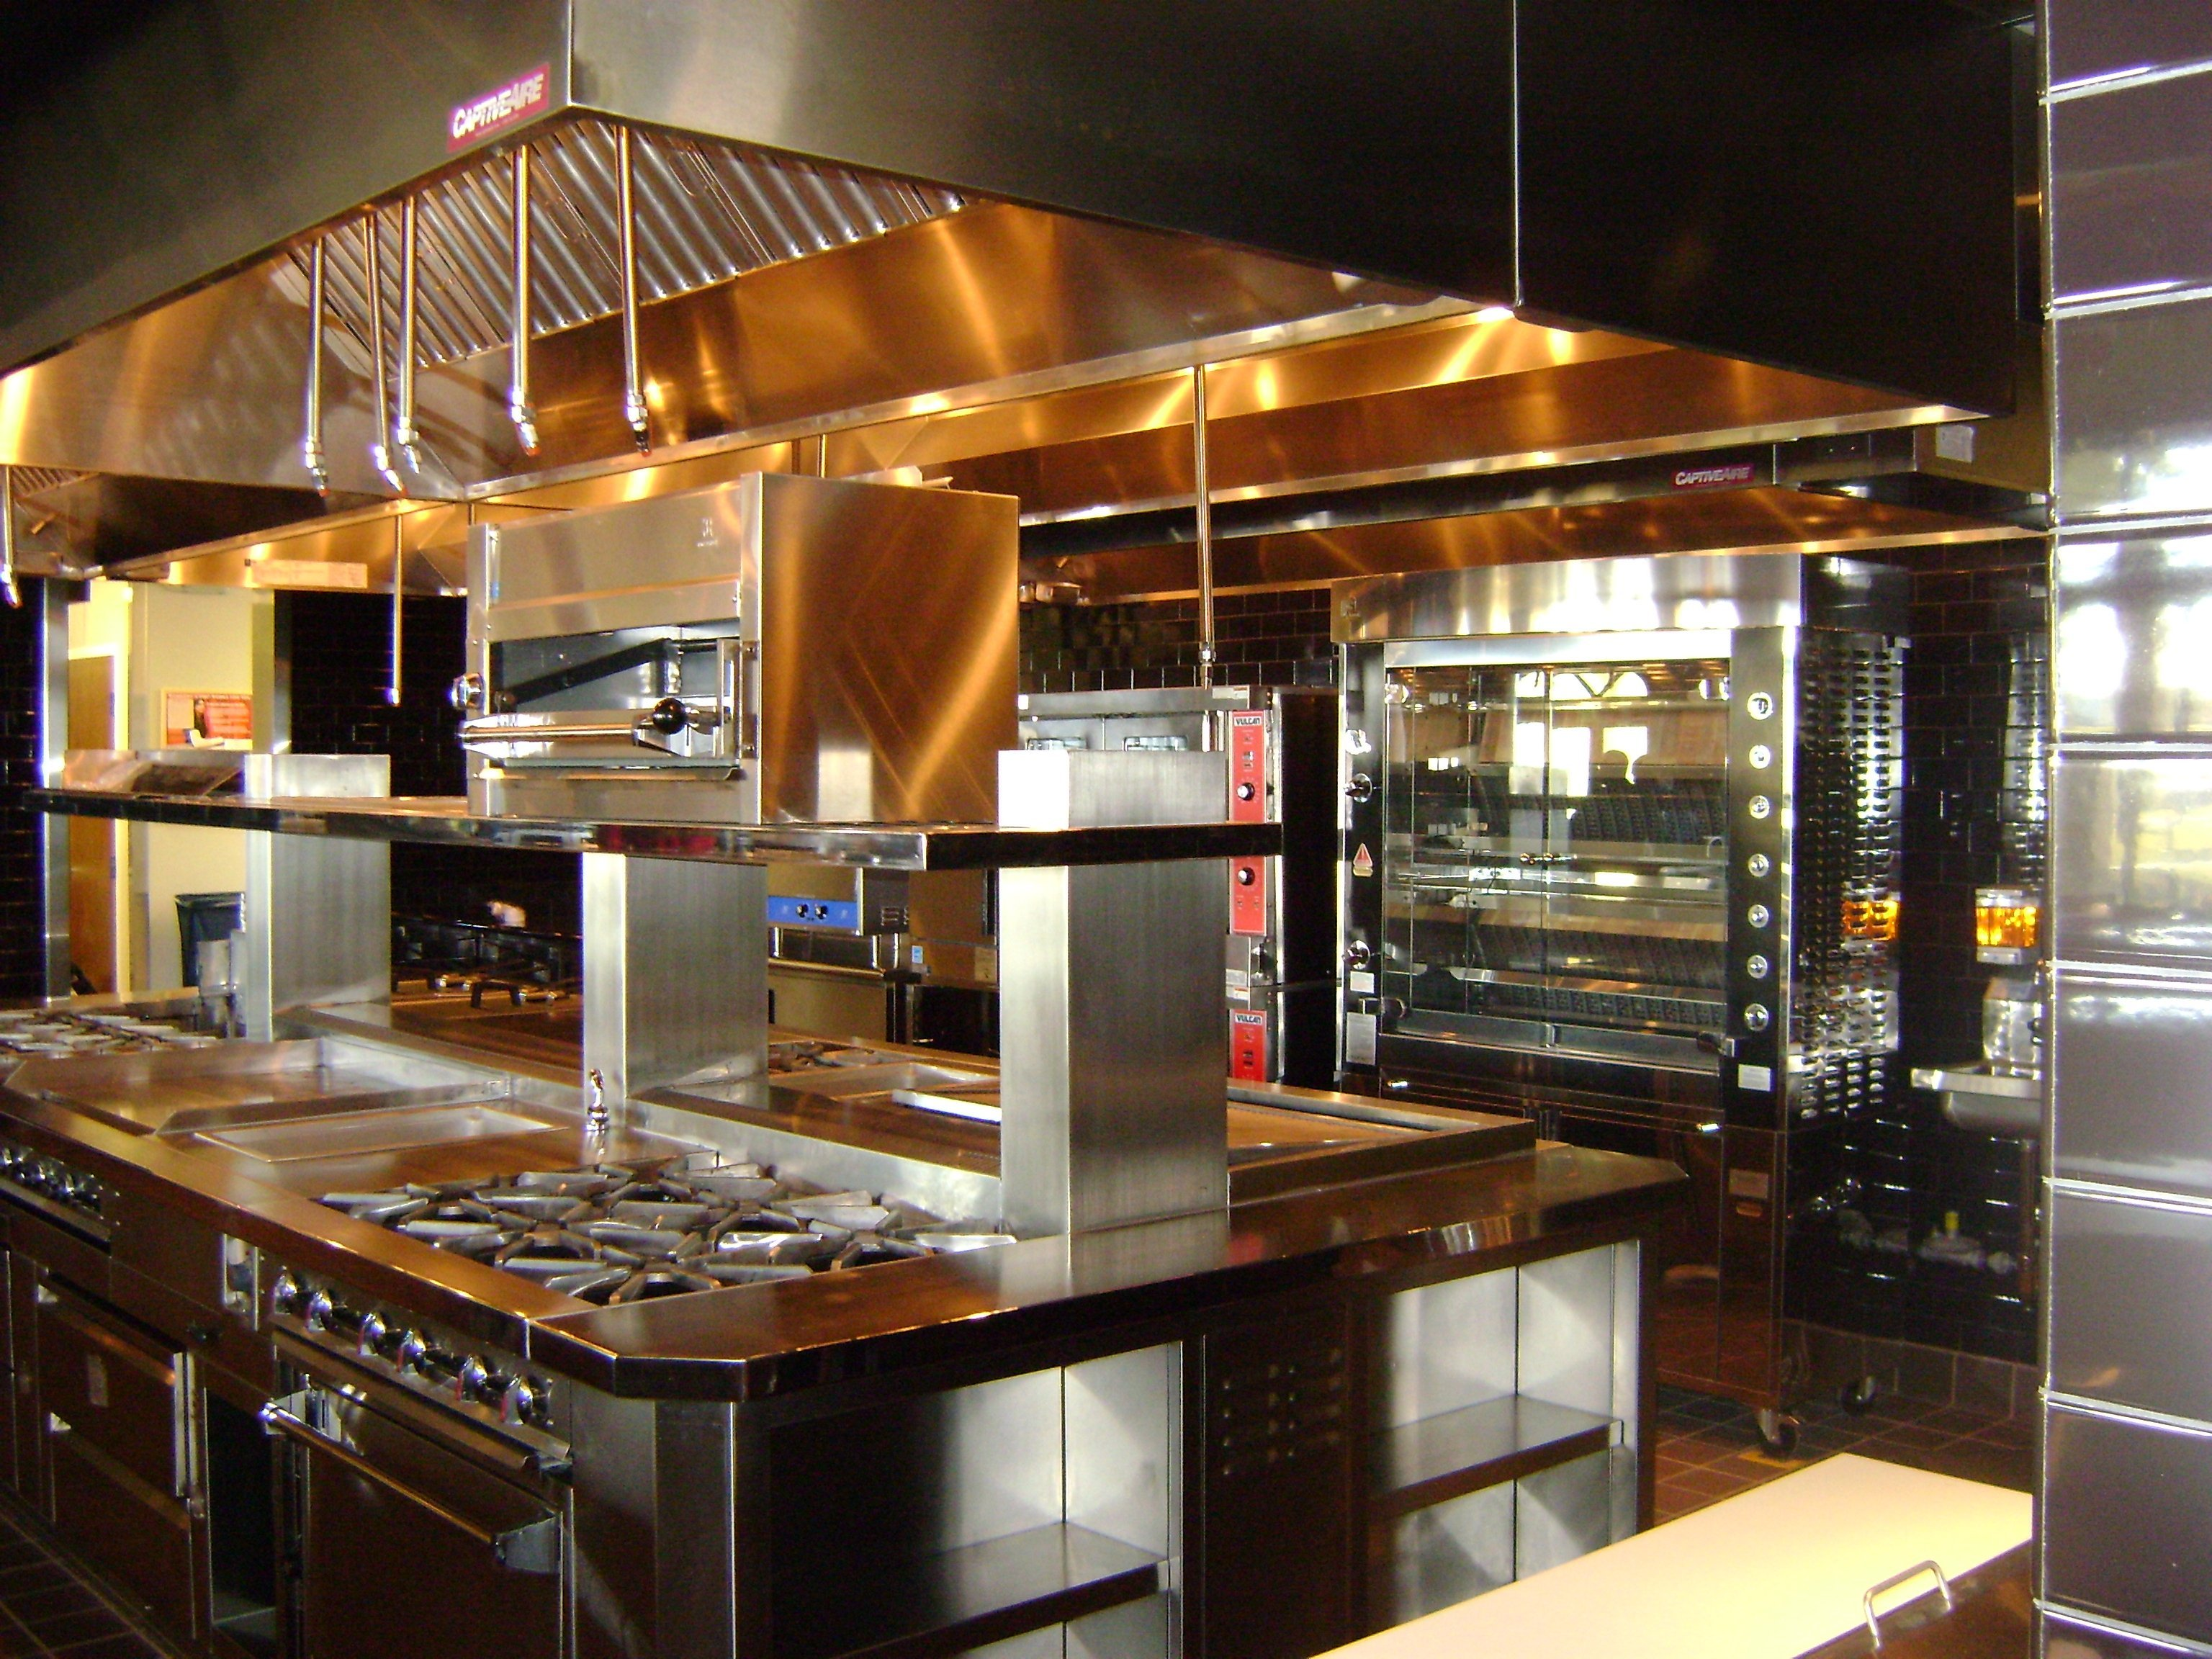 designer kitchens potters bar dsc01213 1 tapmag tapmag 6650